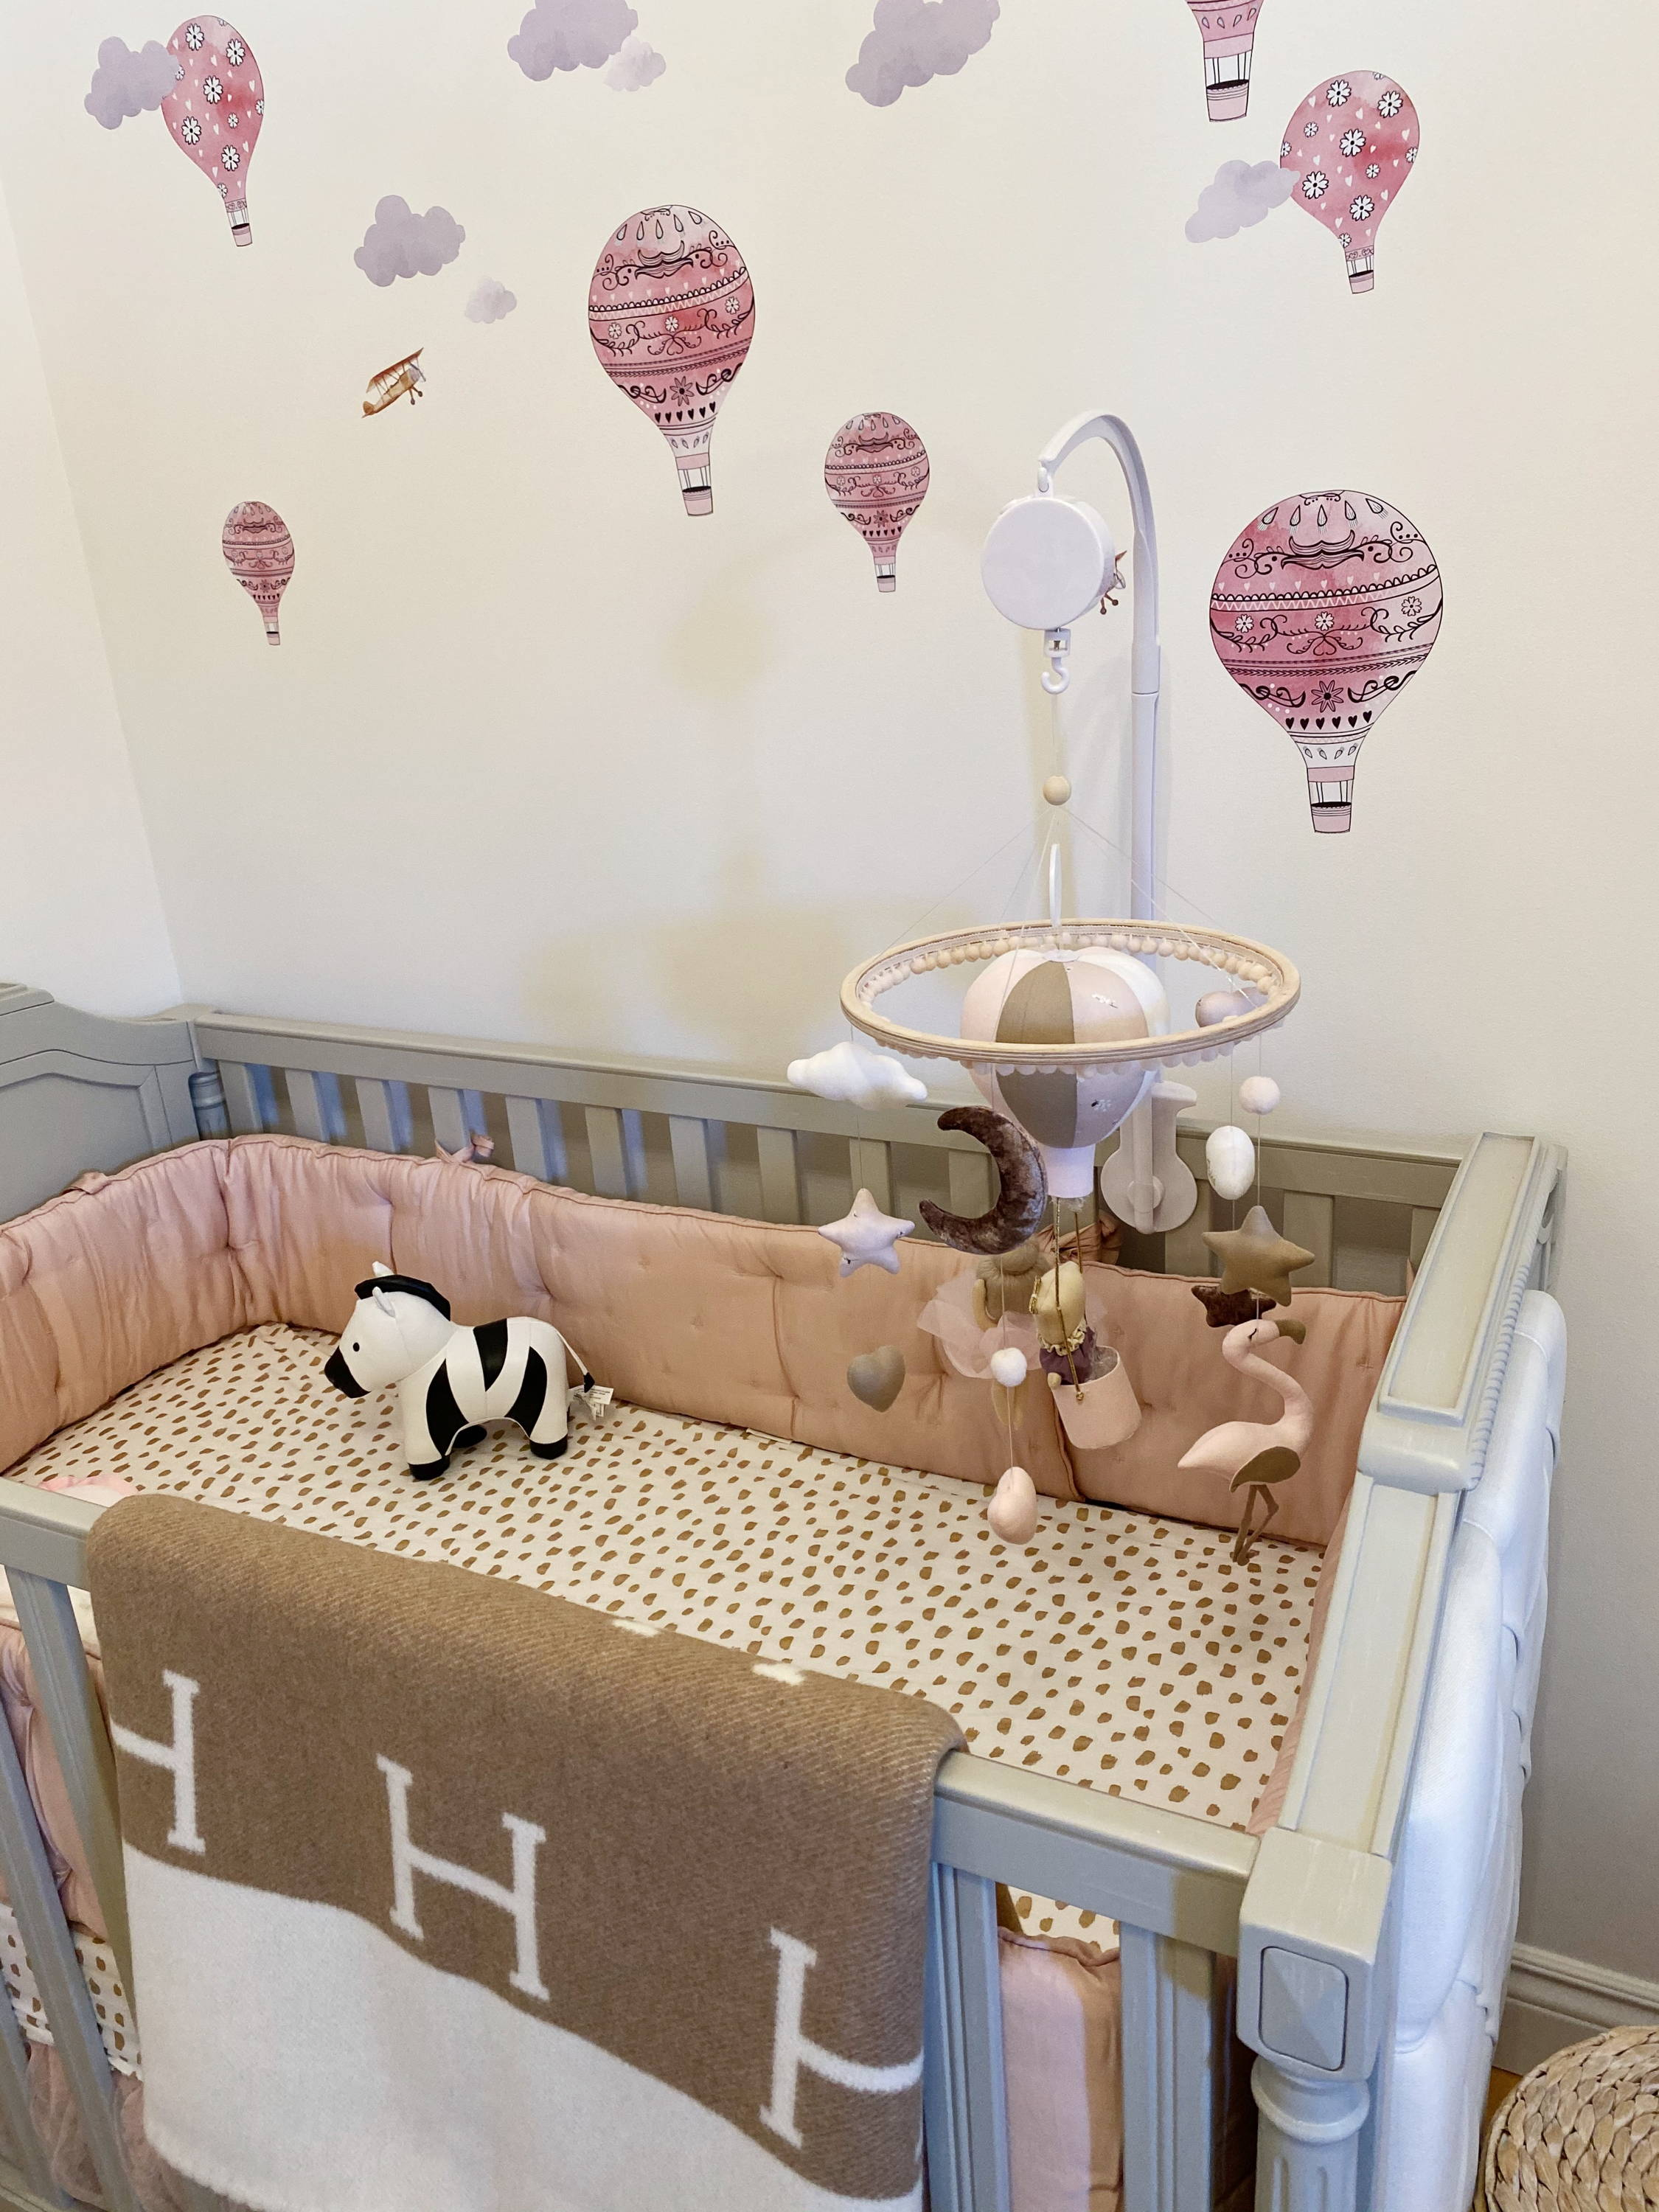 blythe crib from pottery barn kids in a nursery with hermes avalon blanket